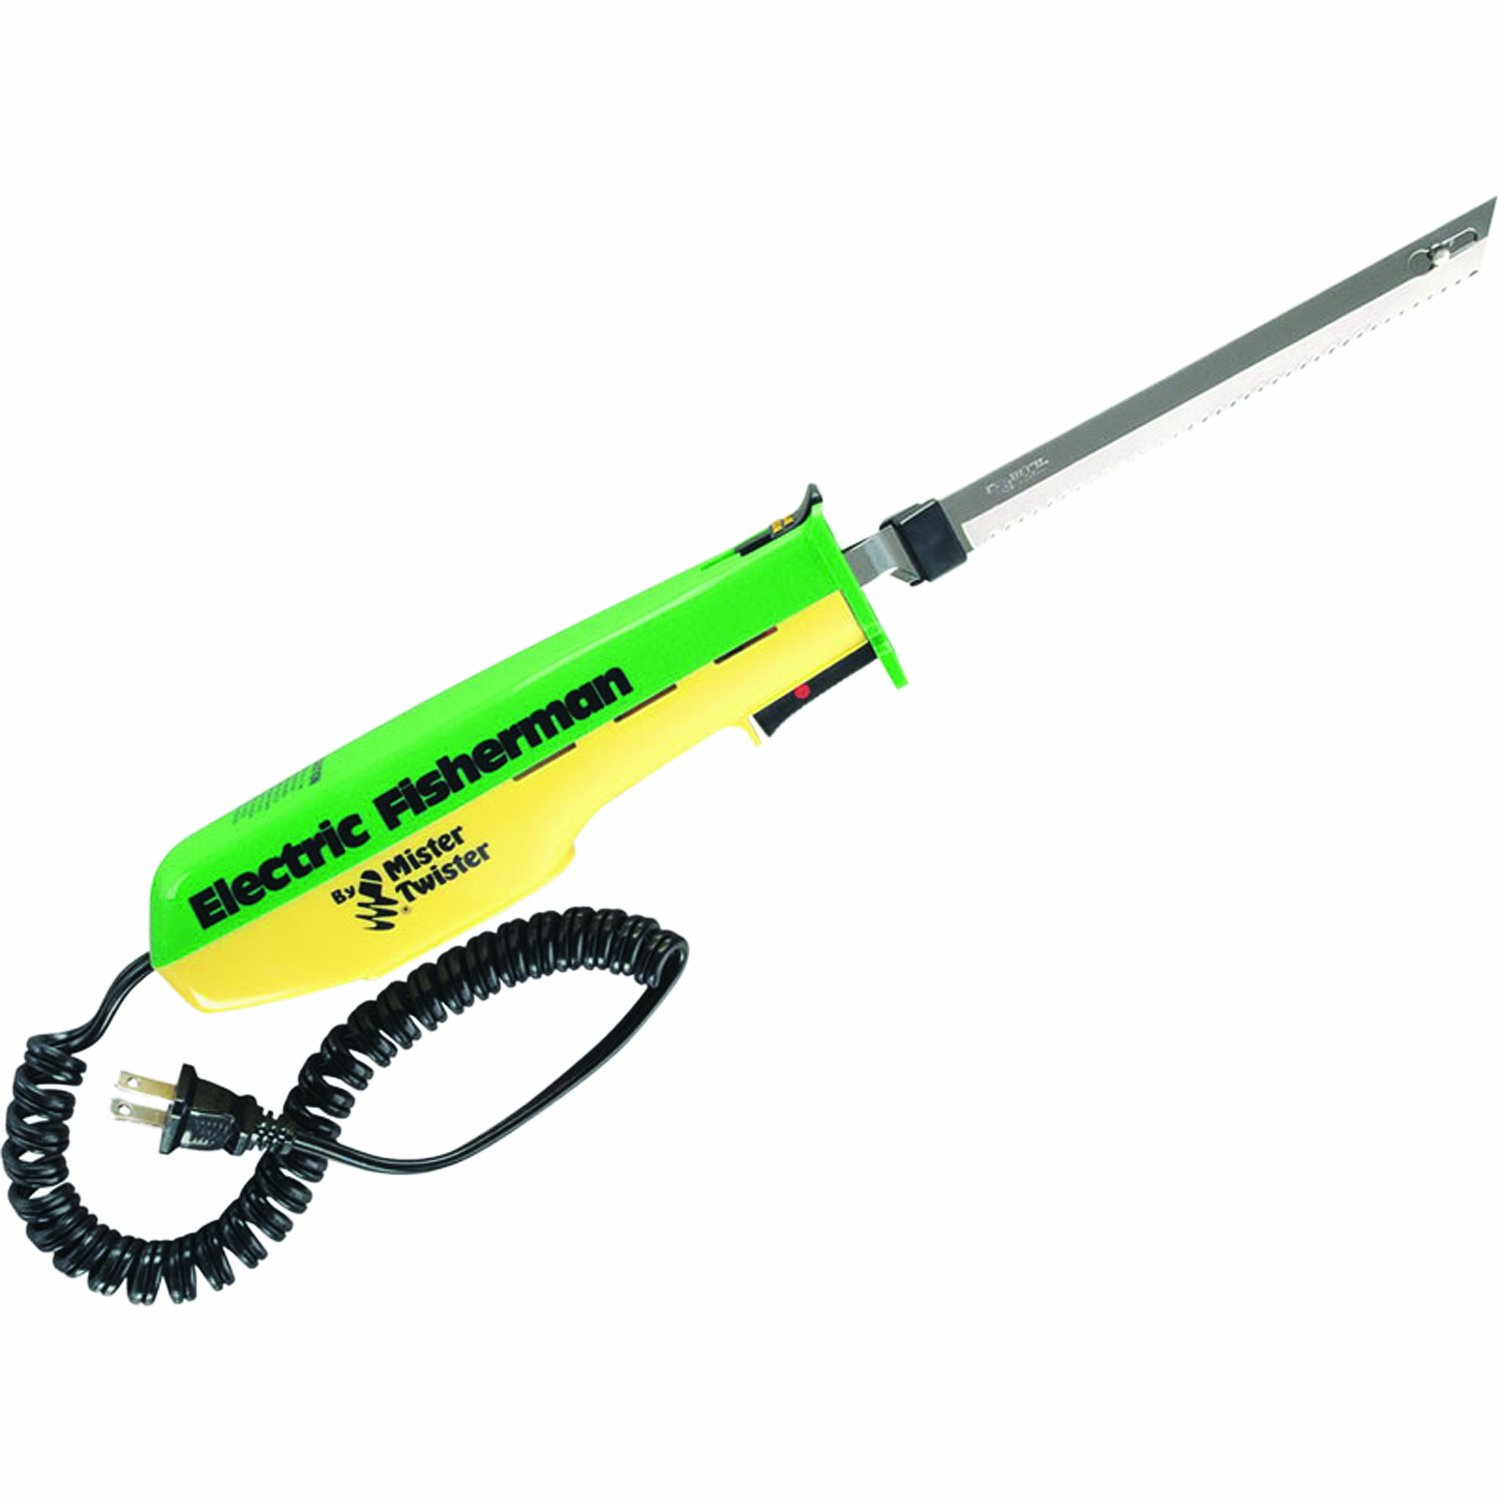 Mister Twister 120V Electric Knife (Green/Yellow) by Mister Twister